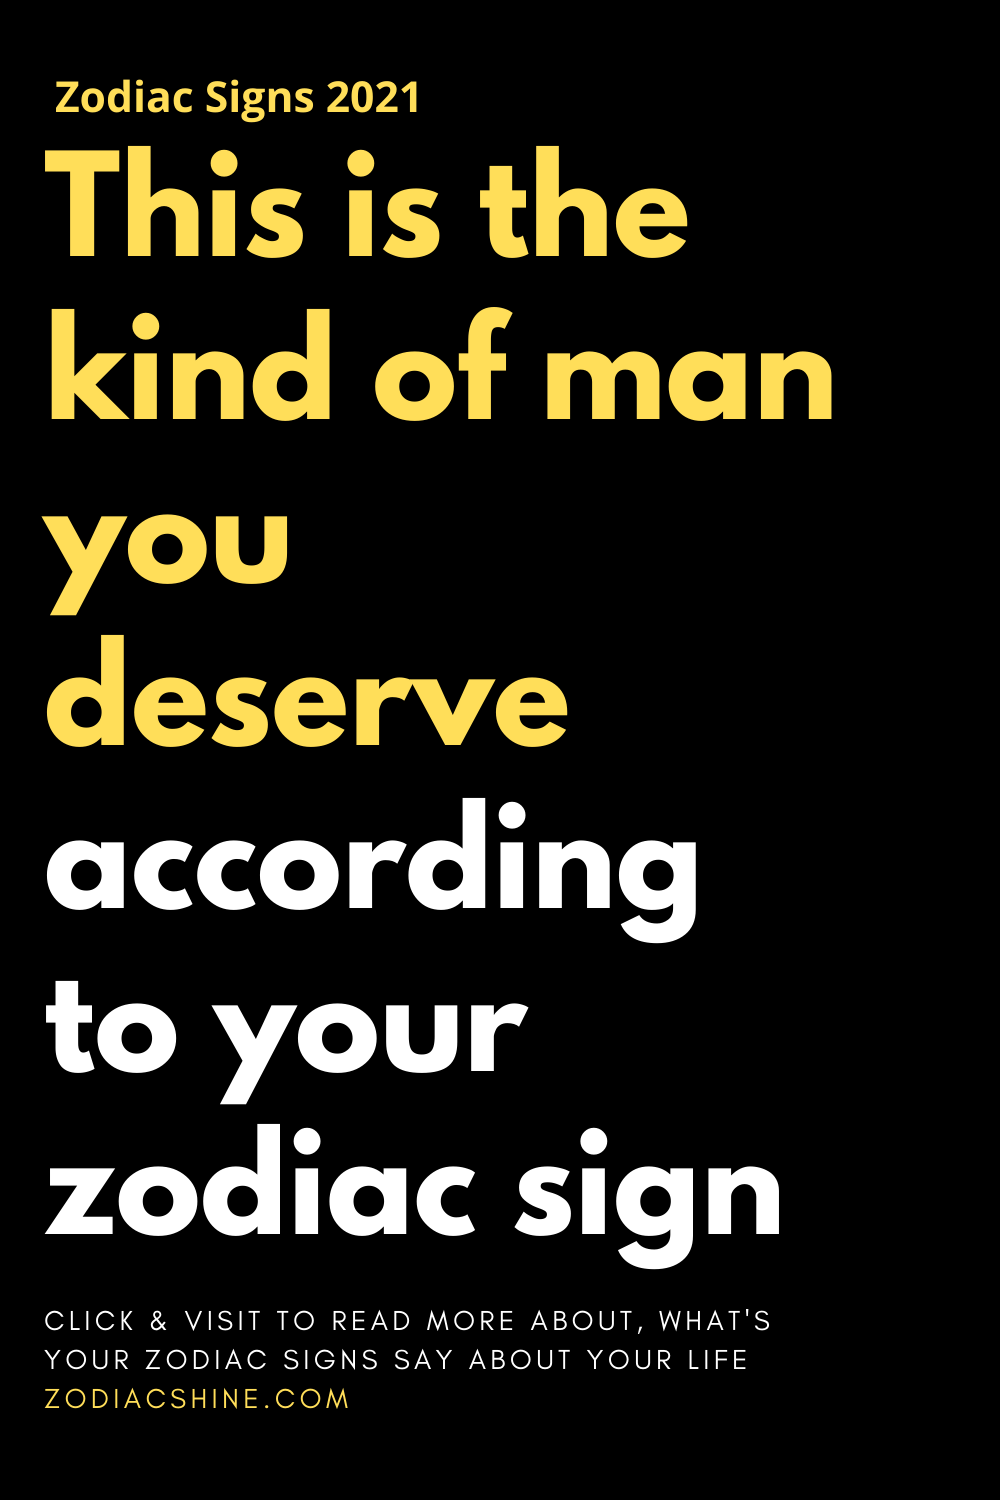 This is the kind of man you deserve according to your zodiac sign